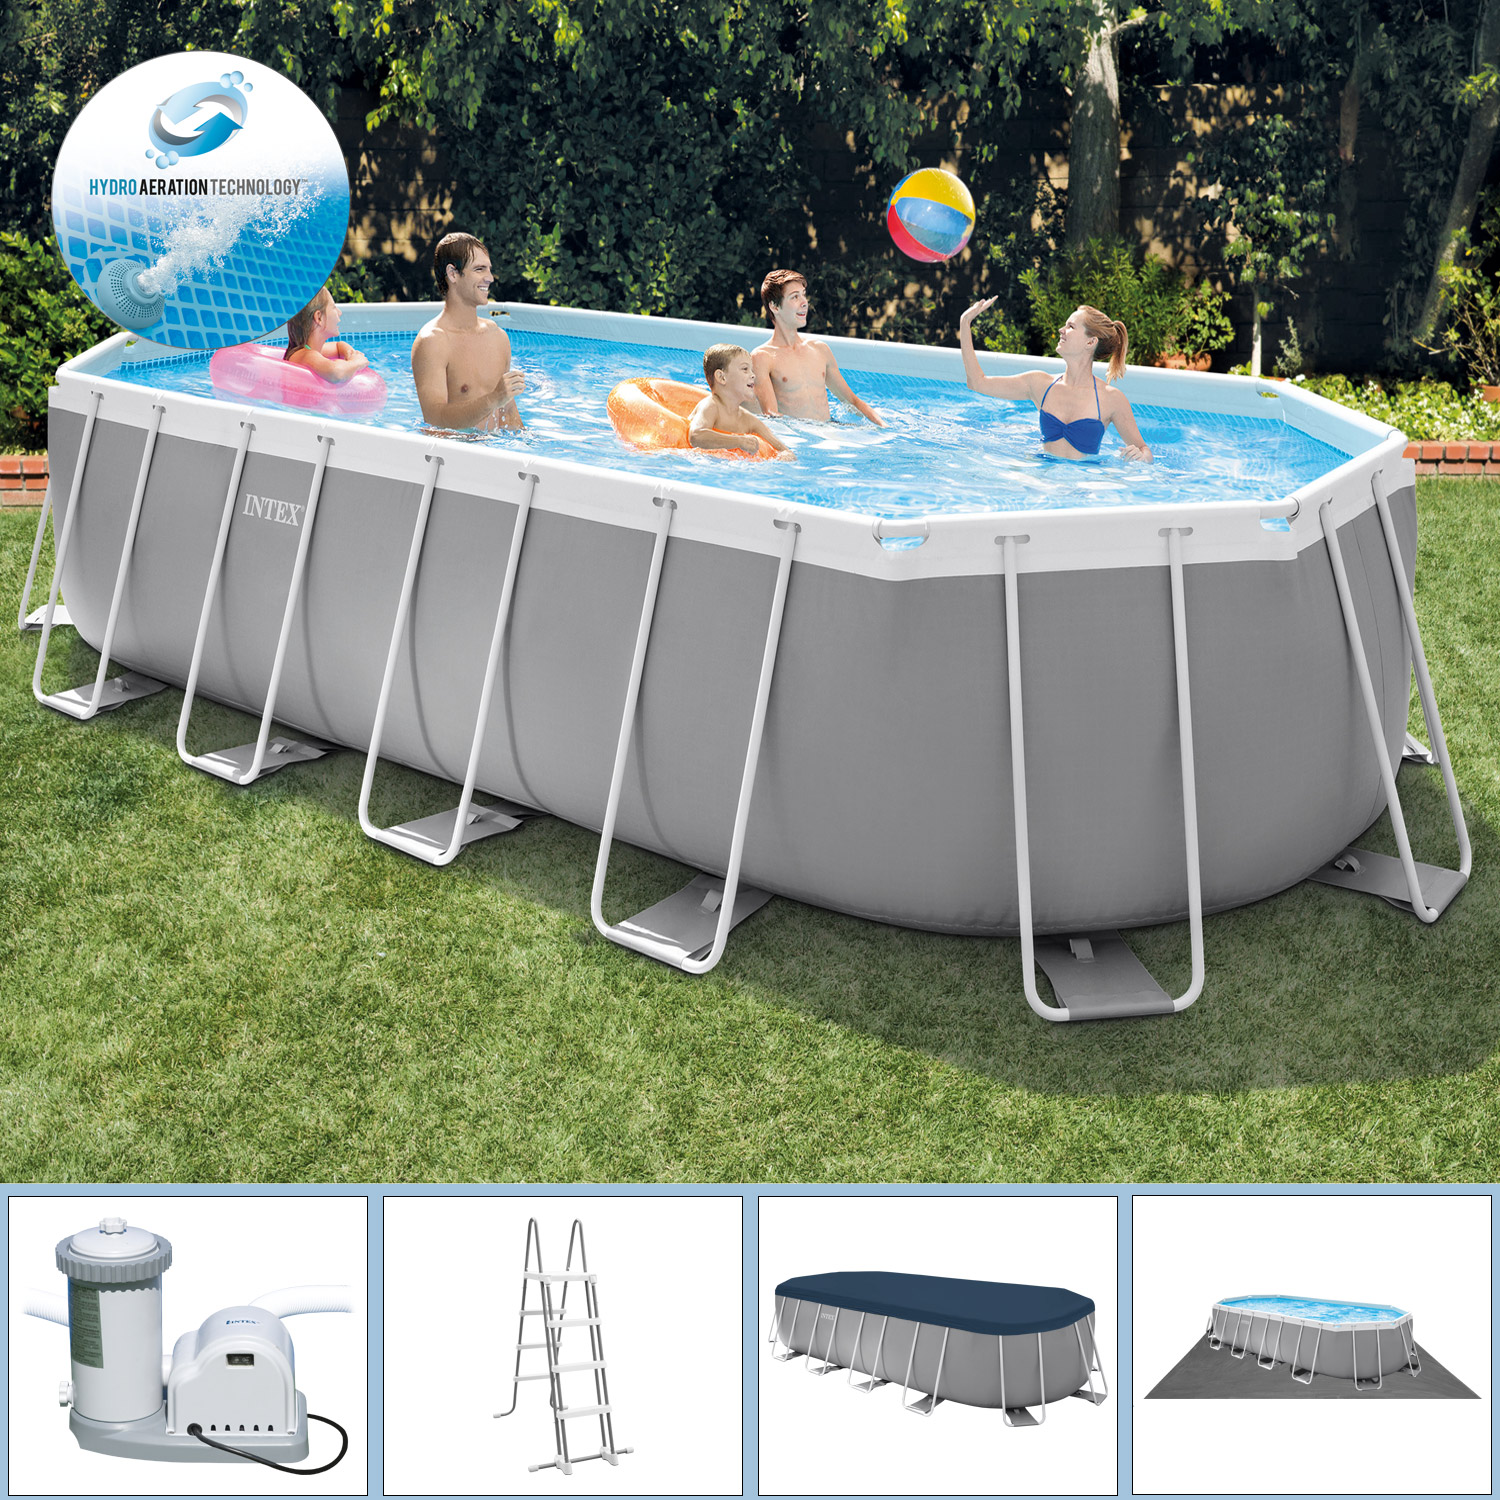 Intex Pool Reinigen Vor Winter Details Zu Intex Swimming Pool 610x305x122 Frame Pool Set Prism Oval Schwimmbecken